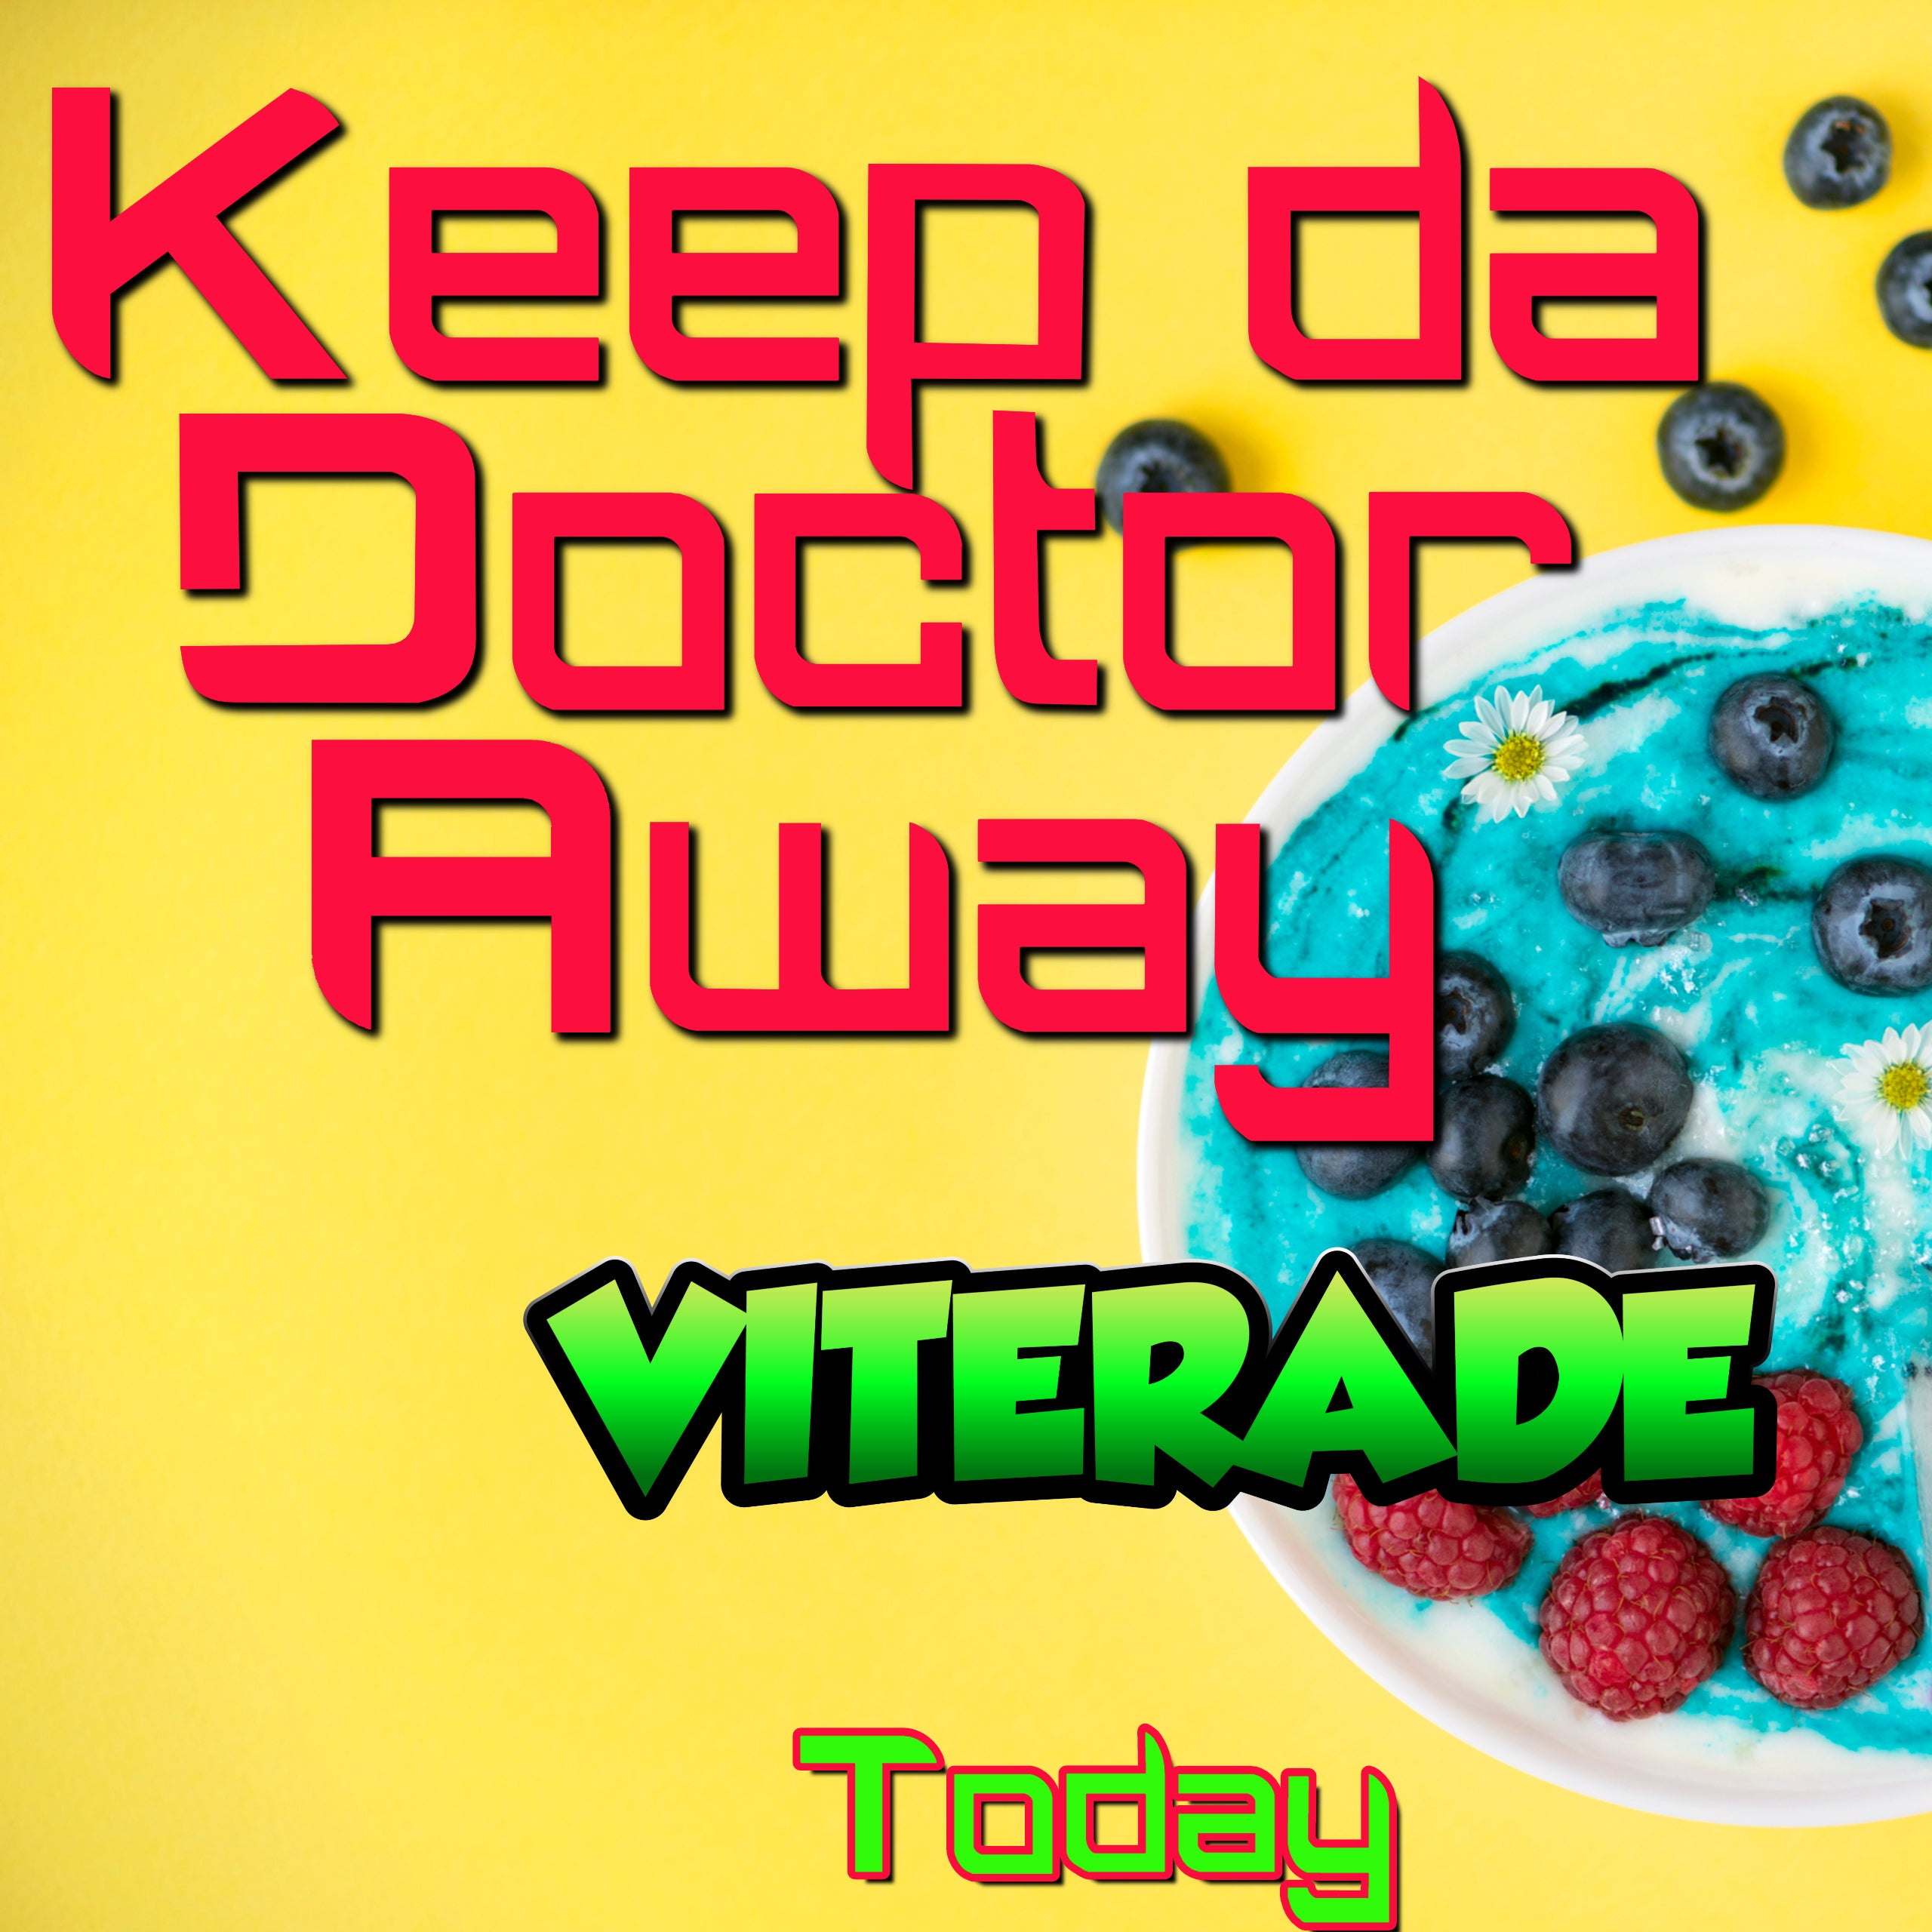 VITERADE - NEW!! Liquid Vitamins - Remastered Mix Makes Kids, Teens and Toddlers Exceed